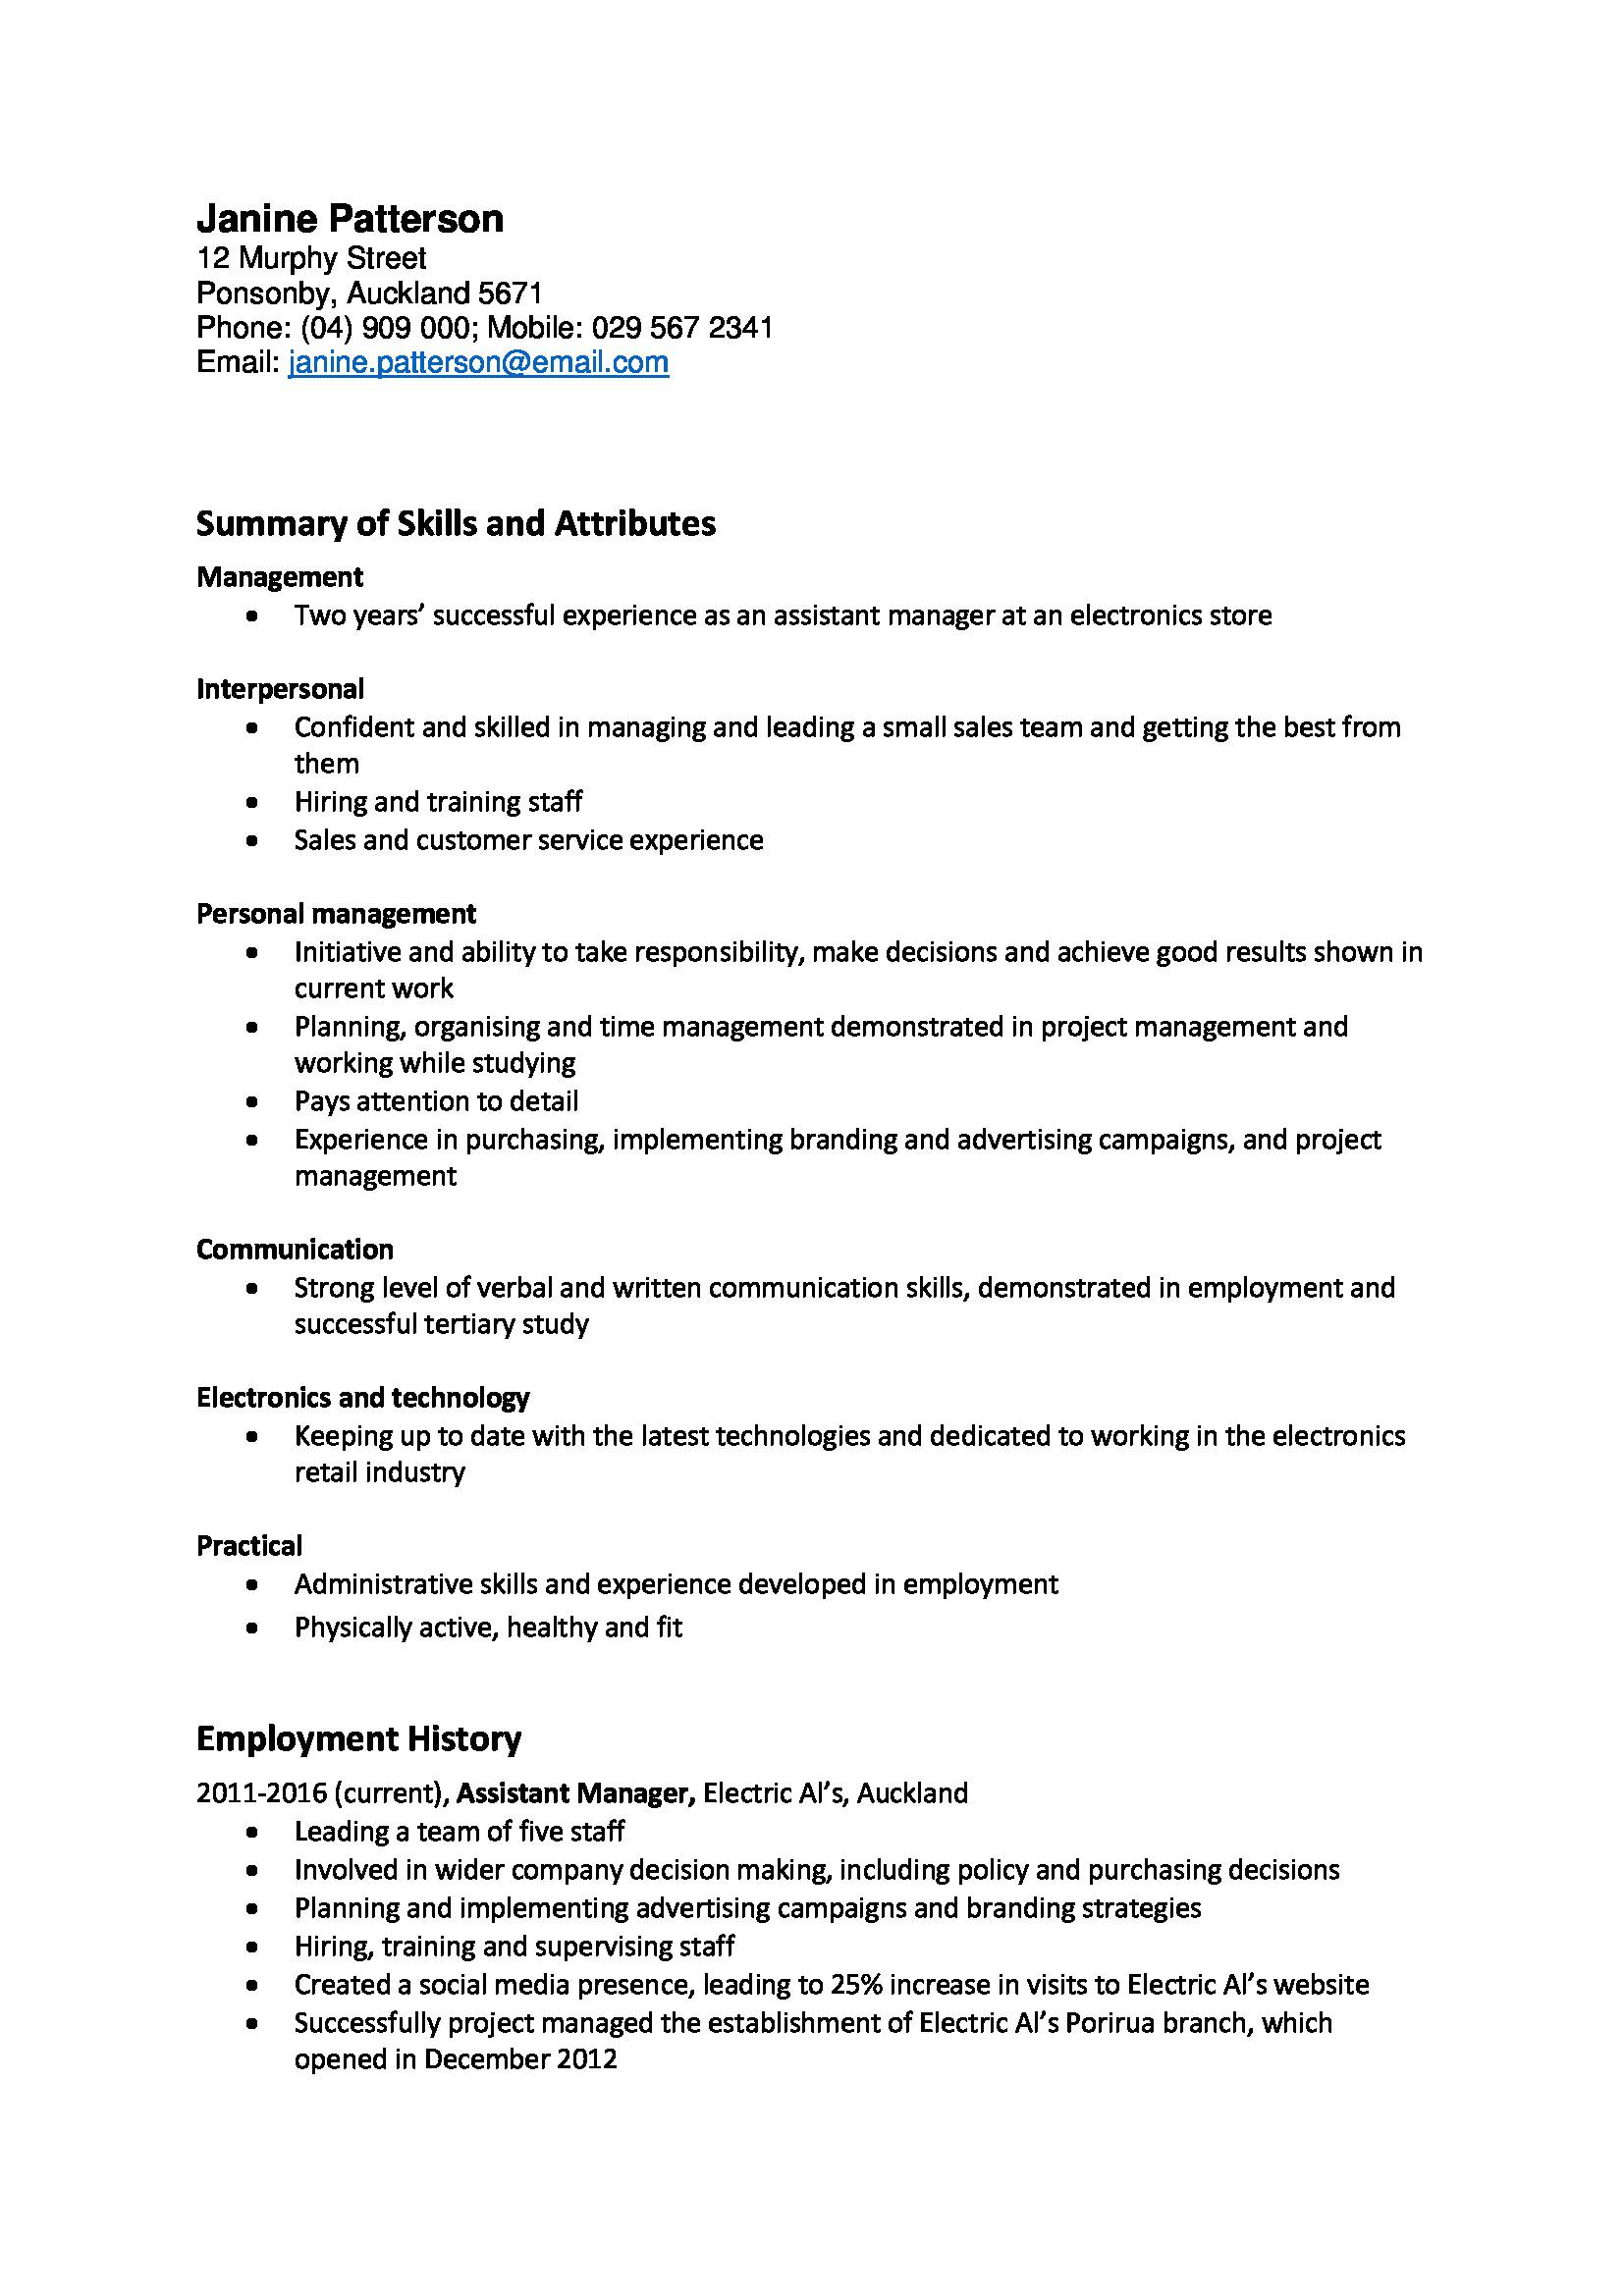 Templates Of Cv Cover Letter